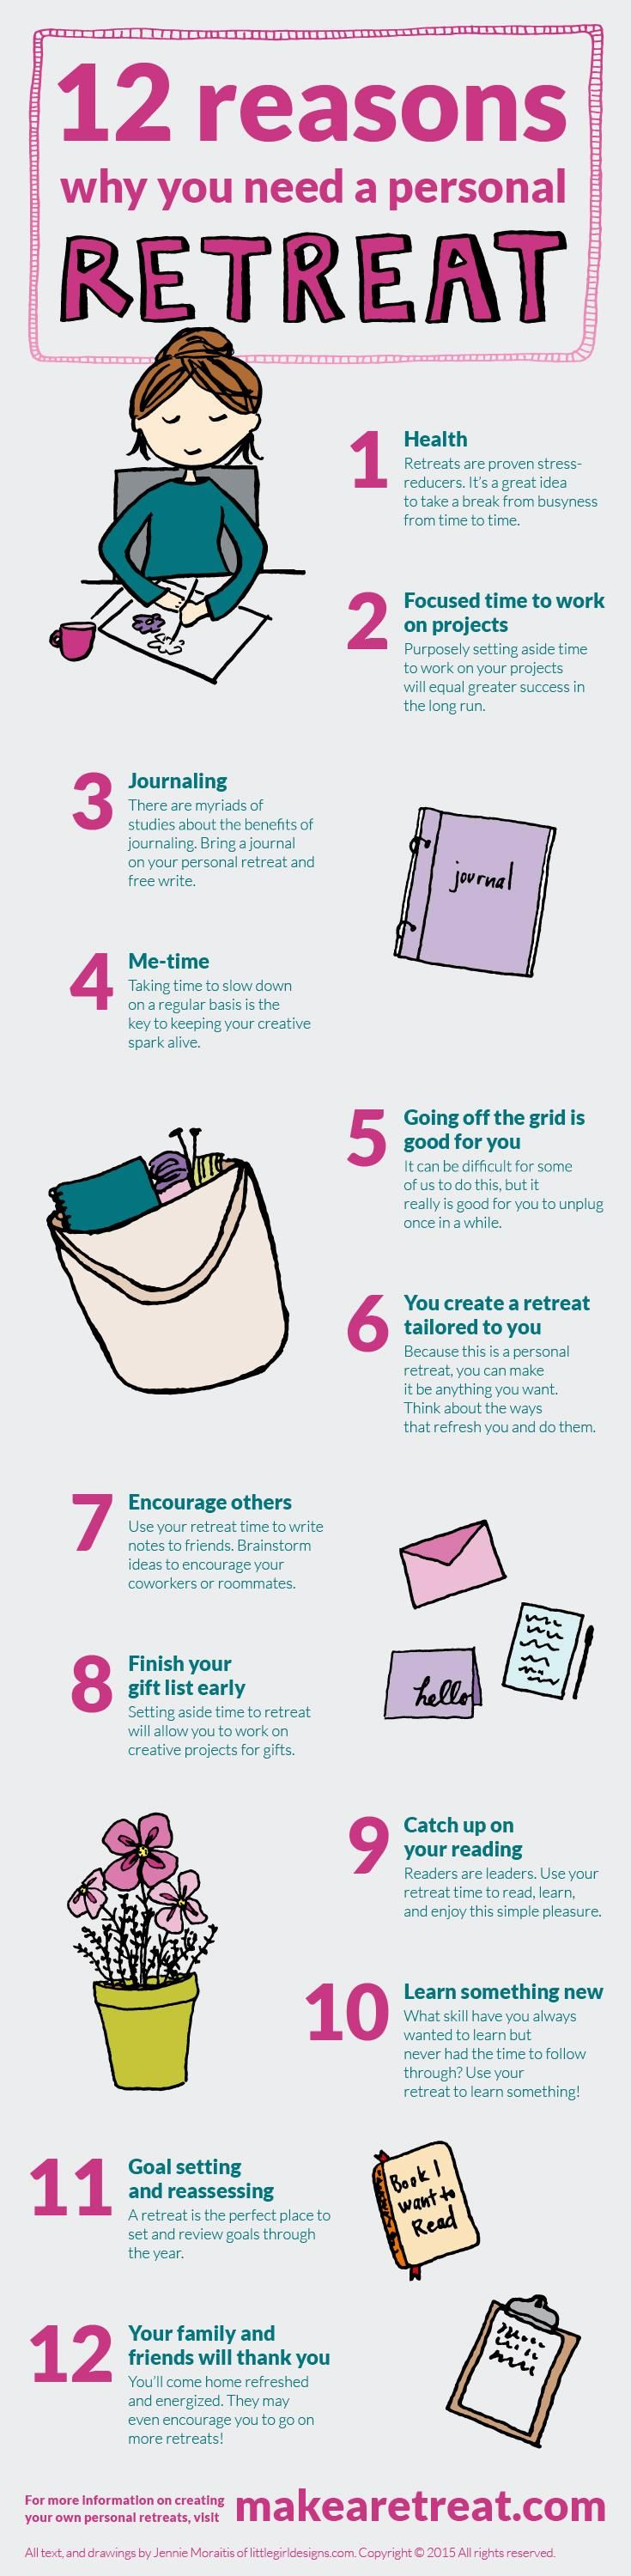 Incredible Design Ideas For Self Confessed Introverts: 5 Non-Digital Activities To Refuel Your Creativity